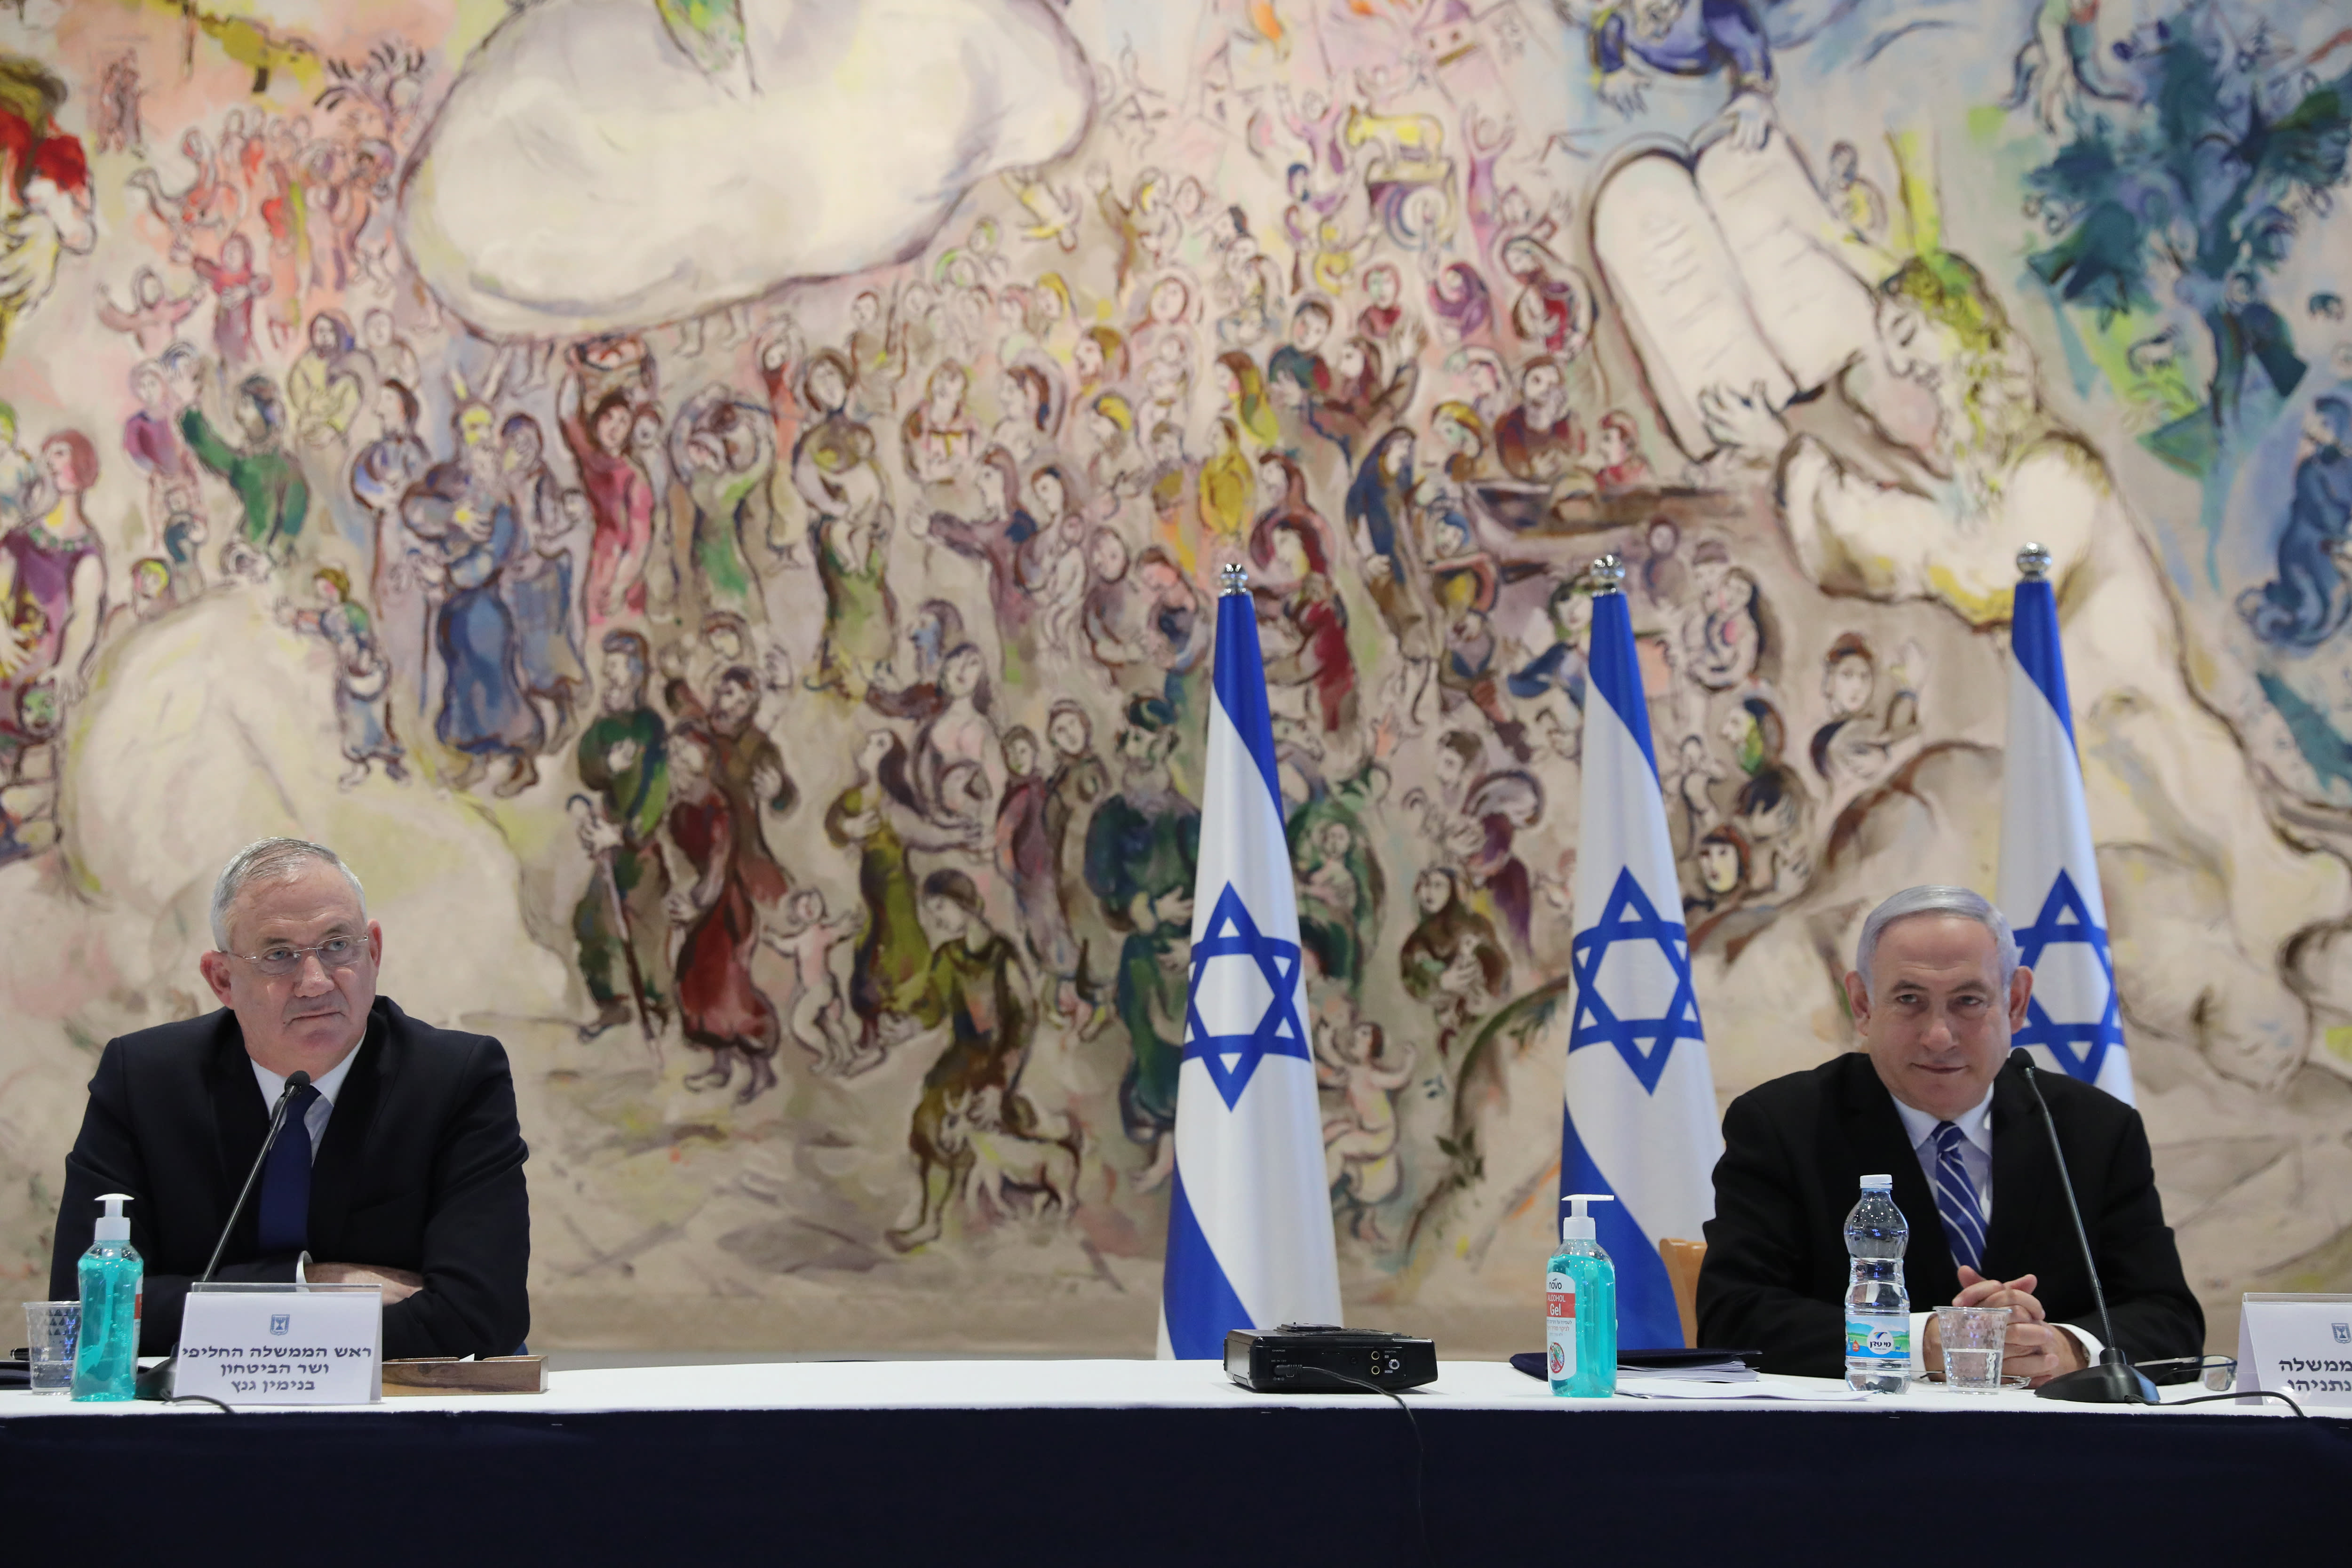 Israeli Prime Minister Benjamin Netanyahu, right, and Defense Minister Benny Gantz attend the first Cabinet meeting of the new government at the Chagall Hall in the Knesset, the Israeli Parliament in Jerusalem, Israel, Sunday, May 24, 2020. (Abir Sultan/Pool Photo via AP)